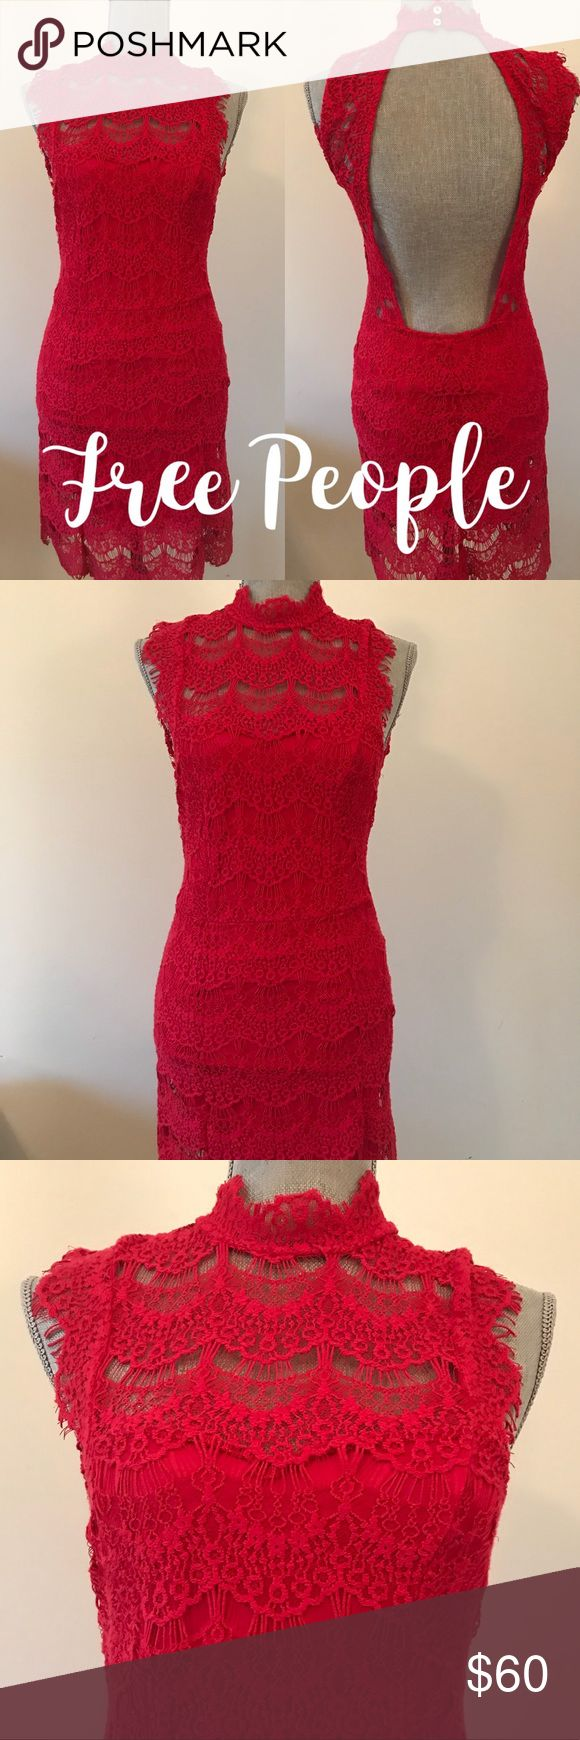 Free People Lace Dress Free People Red lace dress- with open back and goes below the knee. NWT and spare button Free People Dresses